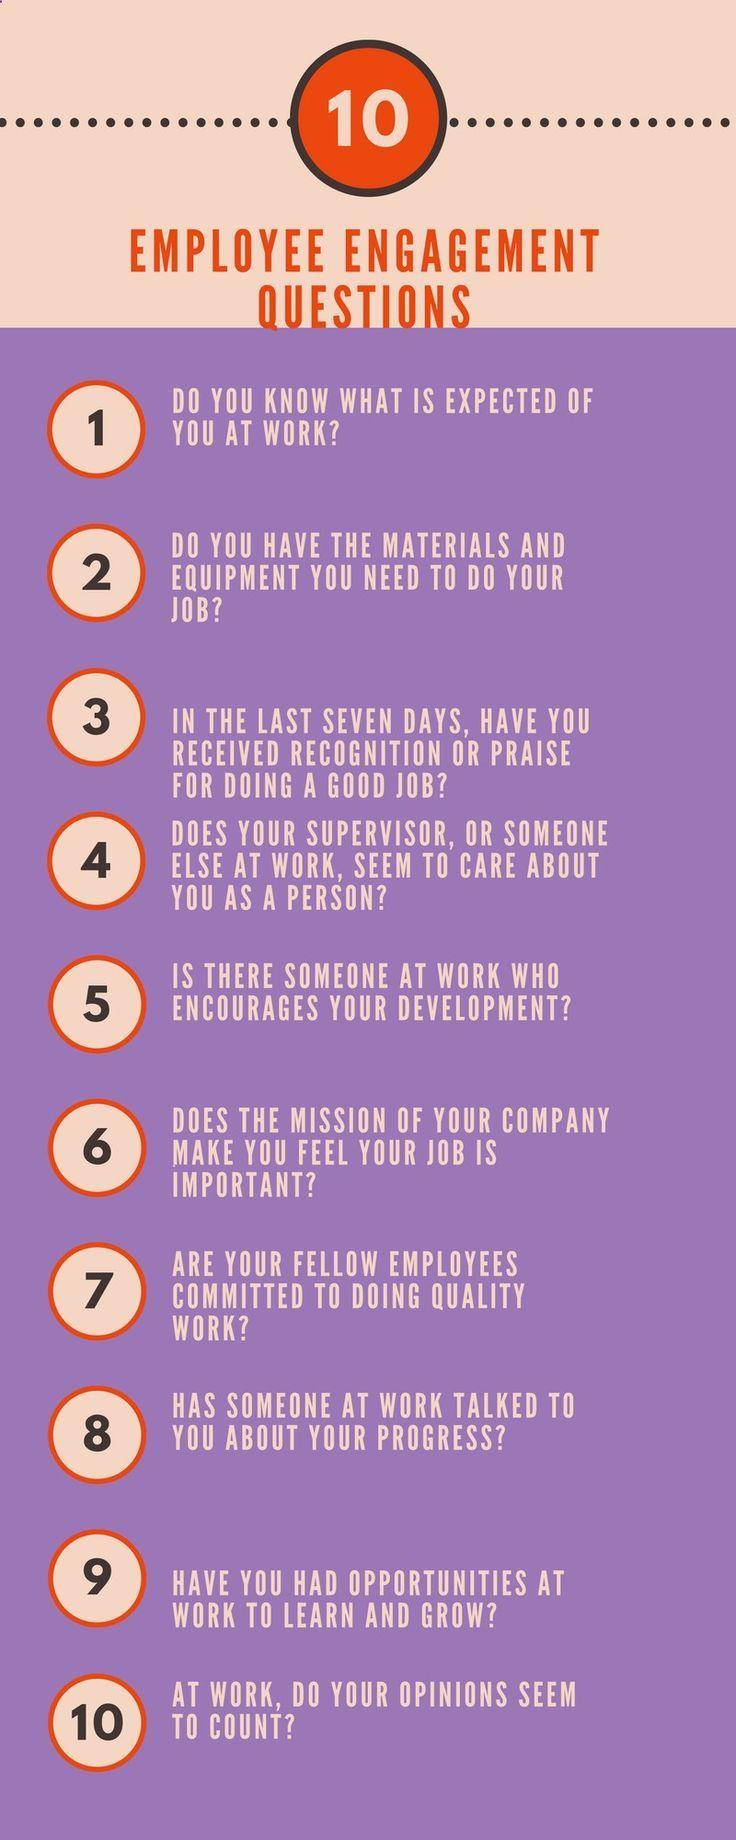 10 Employee Engagement Questions When Was The Last Time You Asked Your Team These Questions Engagement Questions Employee Engagement How To Motivate Employees